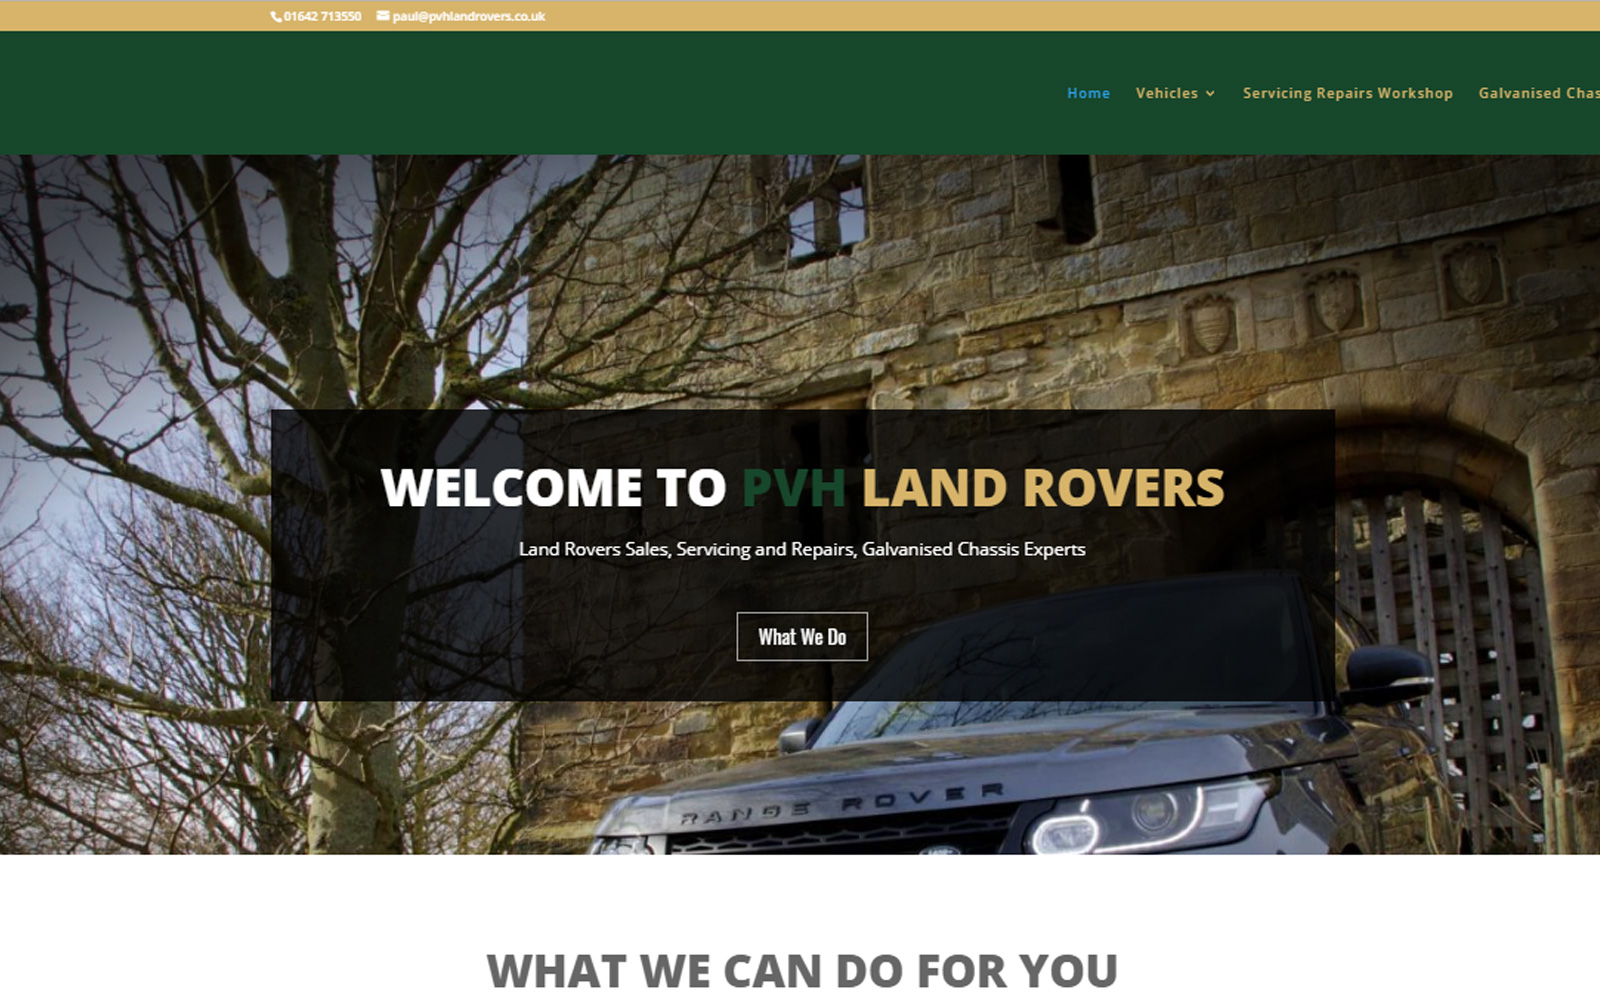 PVH Land Rover website development and photography